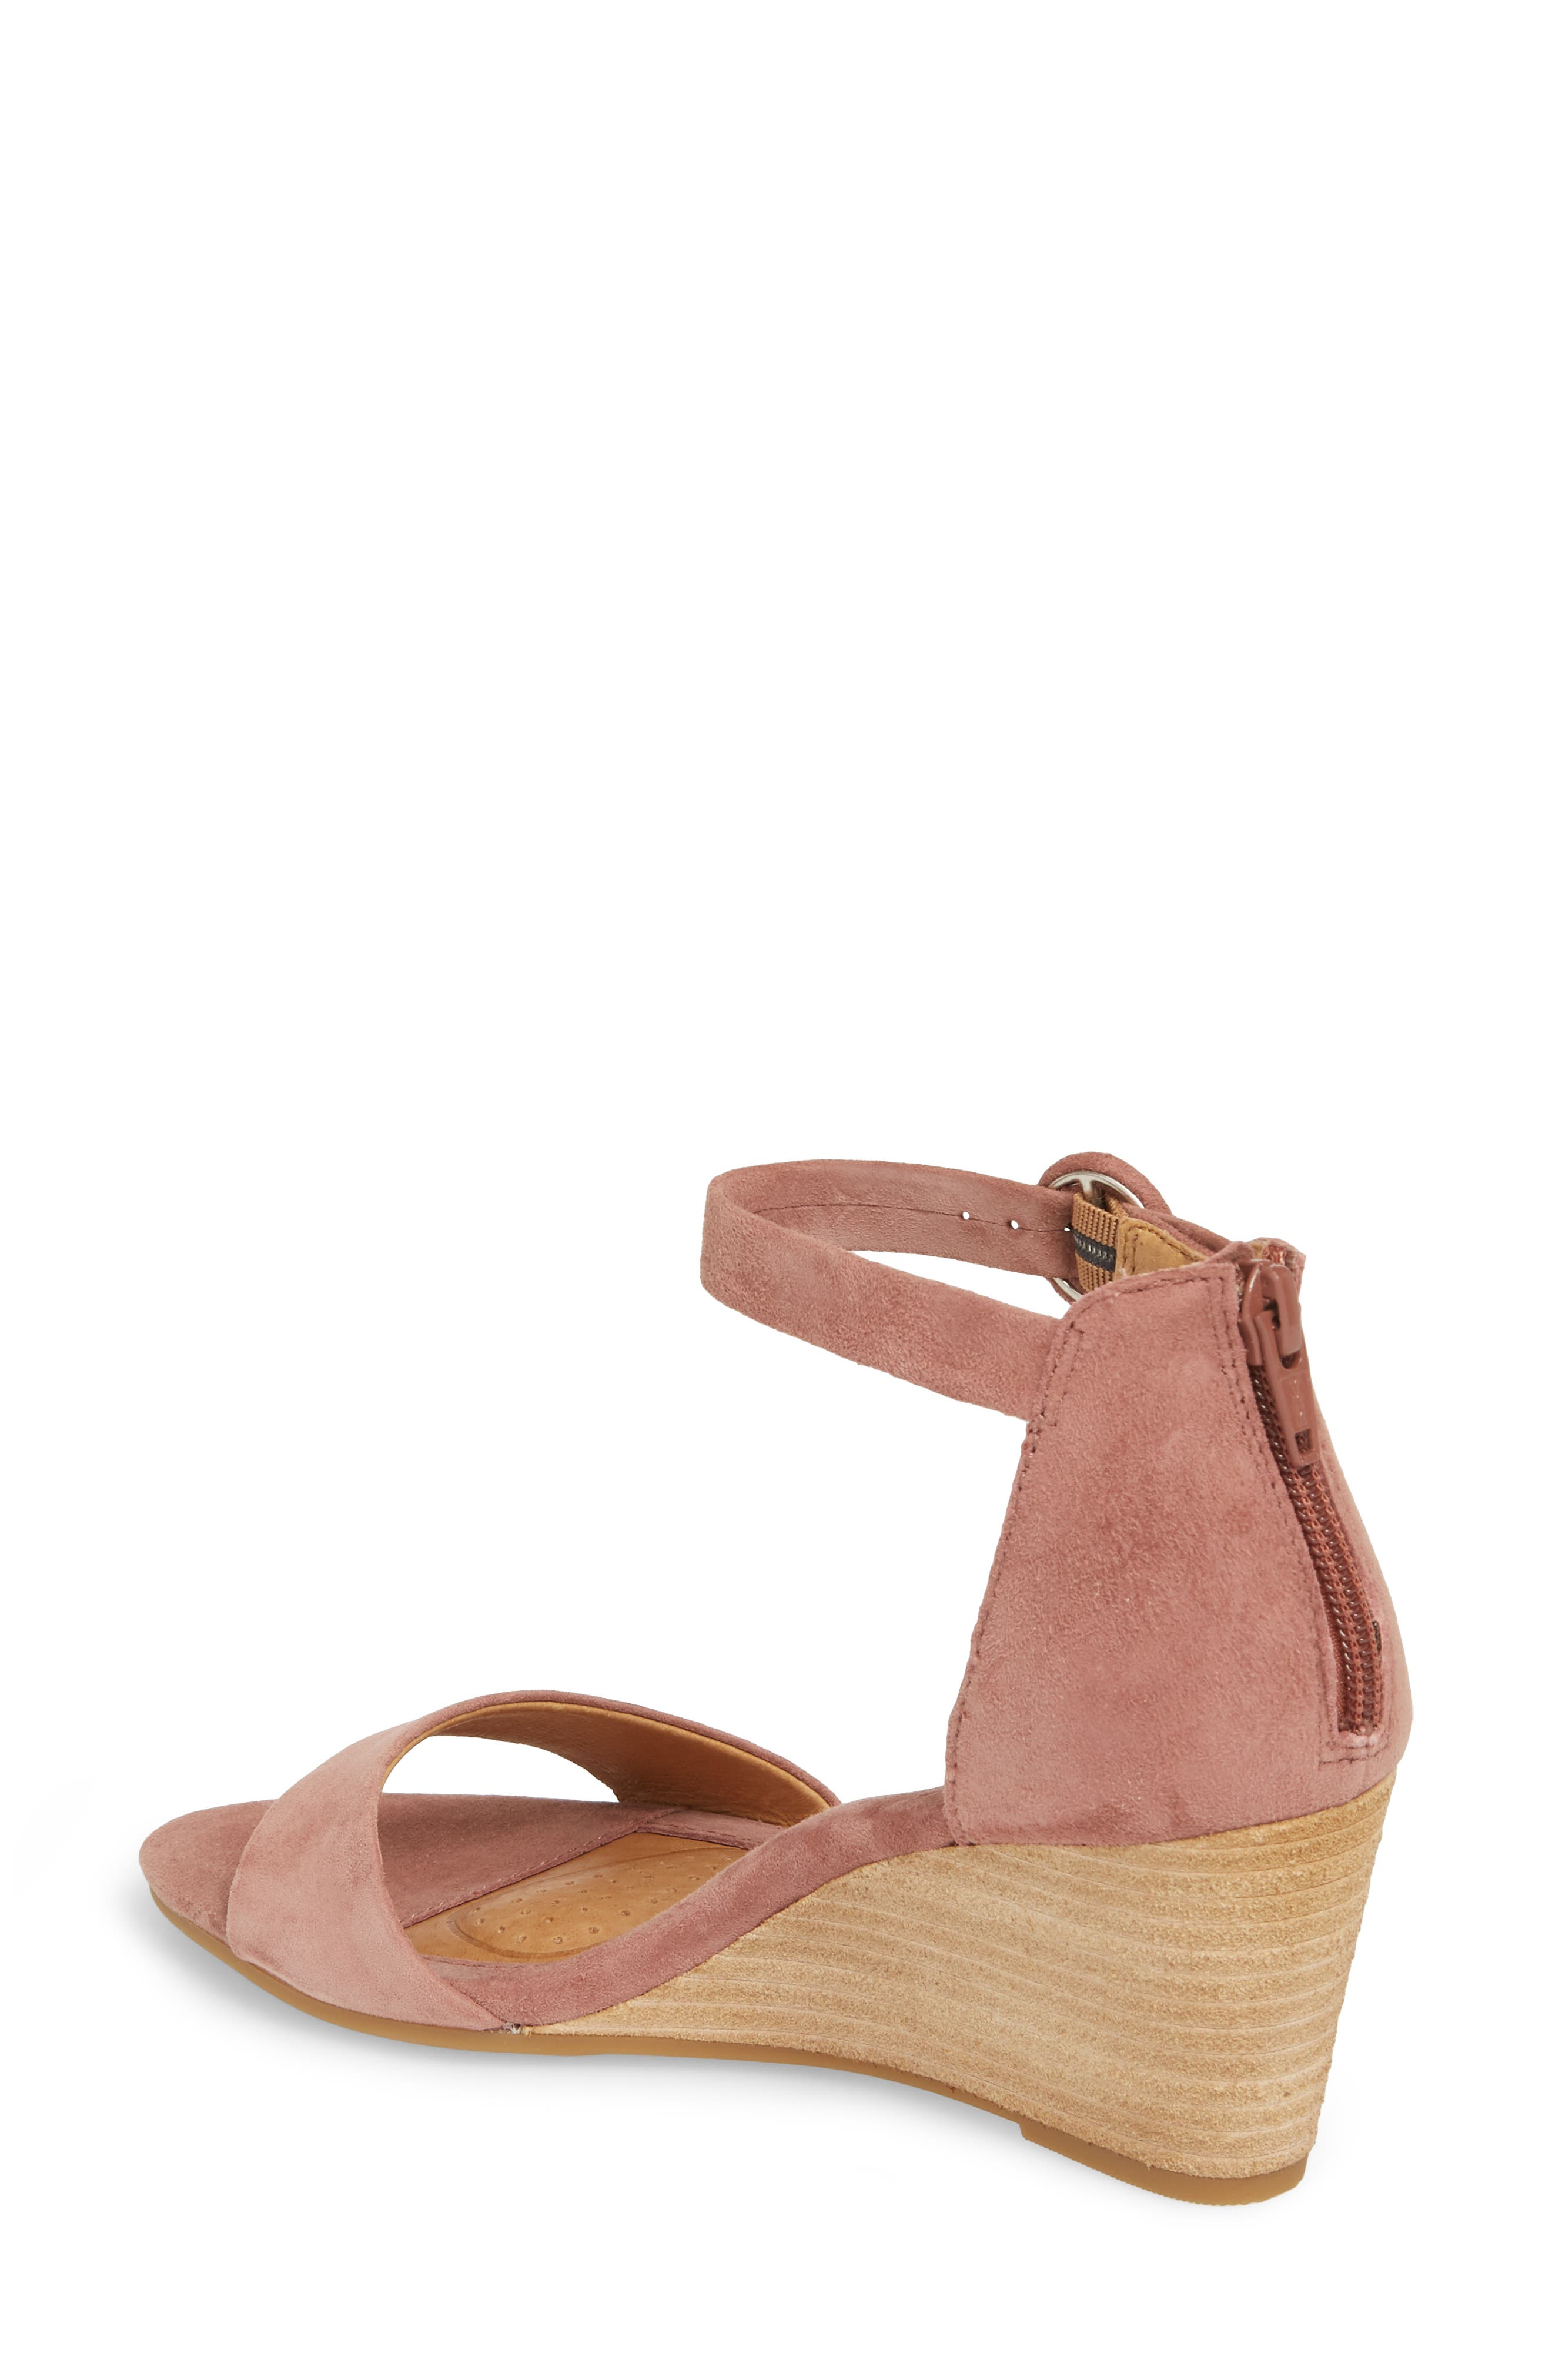 Marla Wedge Sandal,                             Alternate thumbnail 2, color,                             MULBERRY SUEDE